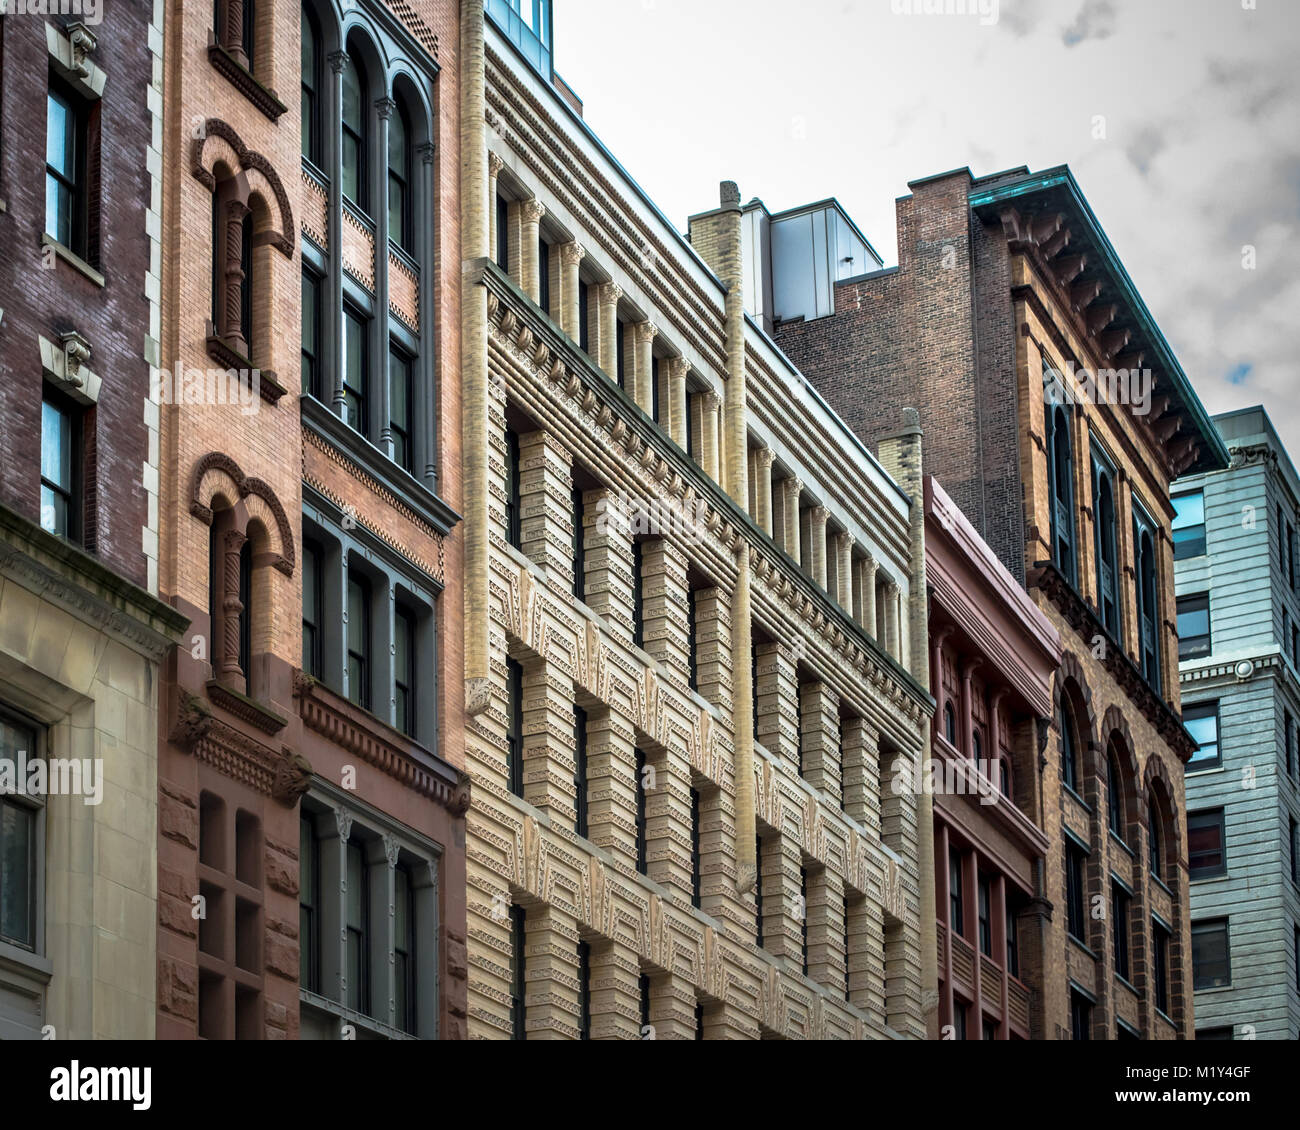 Brownstone Stock Photos & Brownstone Stock Images